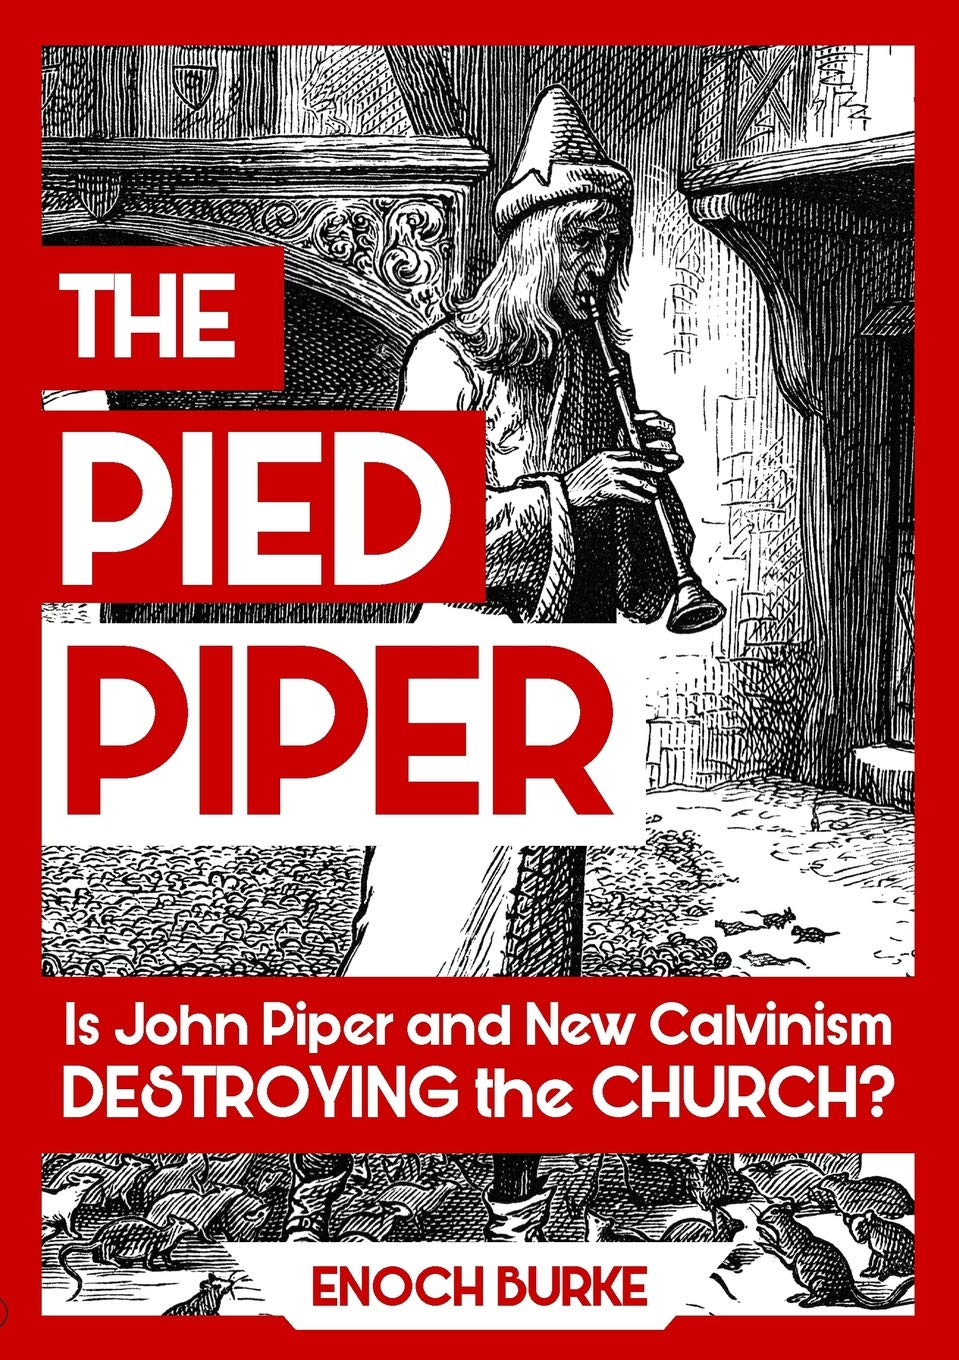 The Pied Piper: Is John Piper and New Calvinism Destroying the Church? pdf